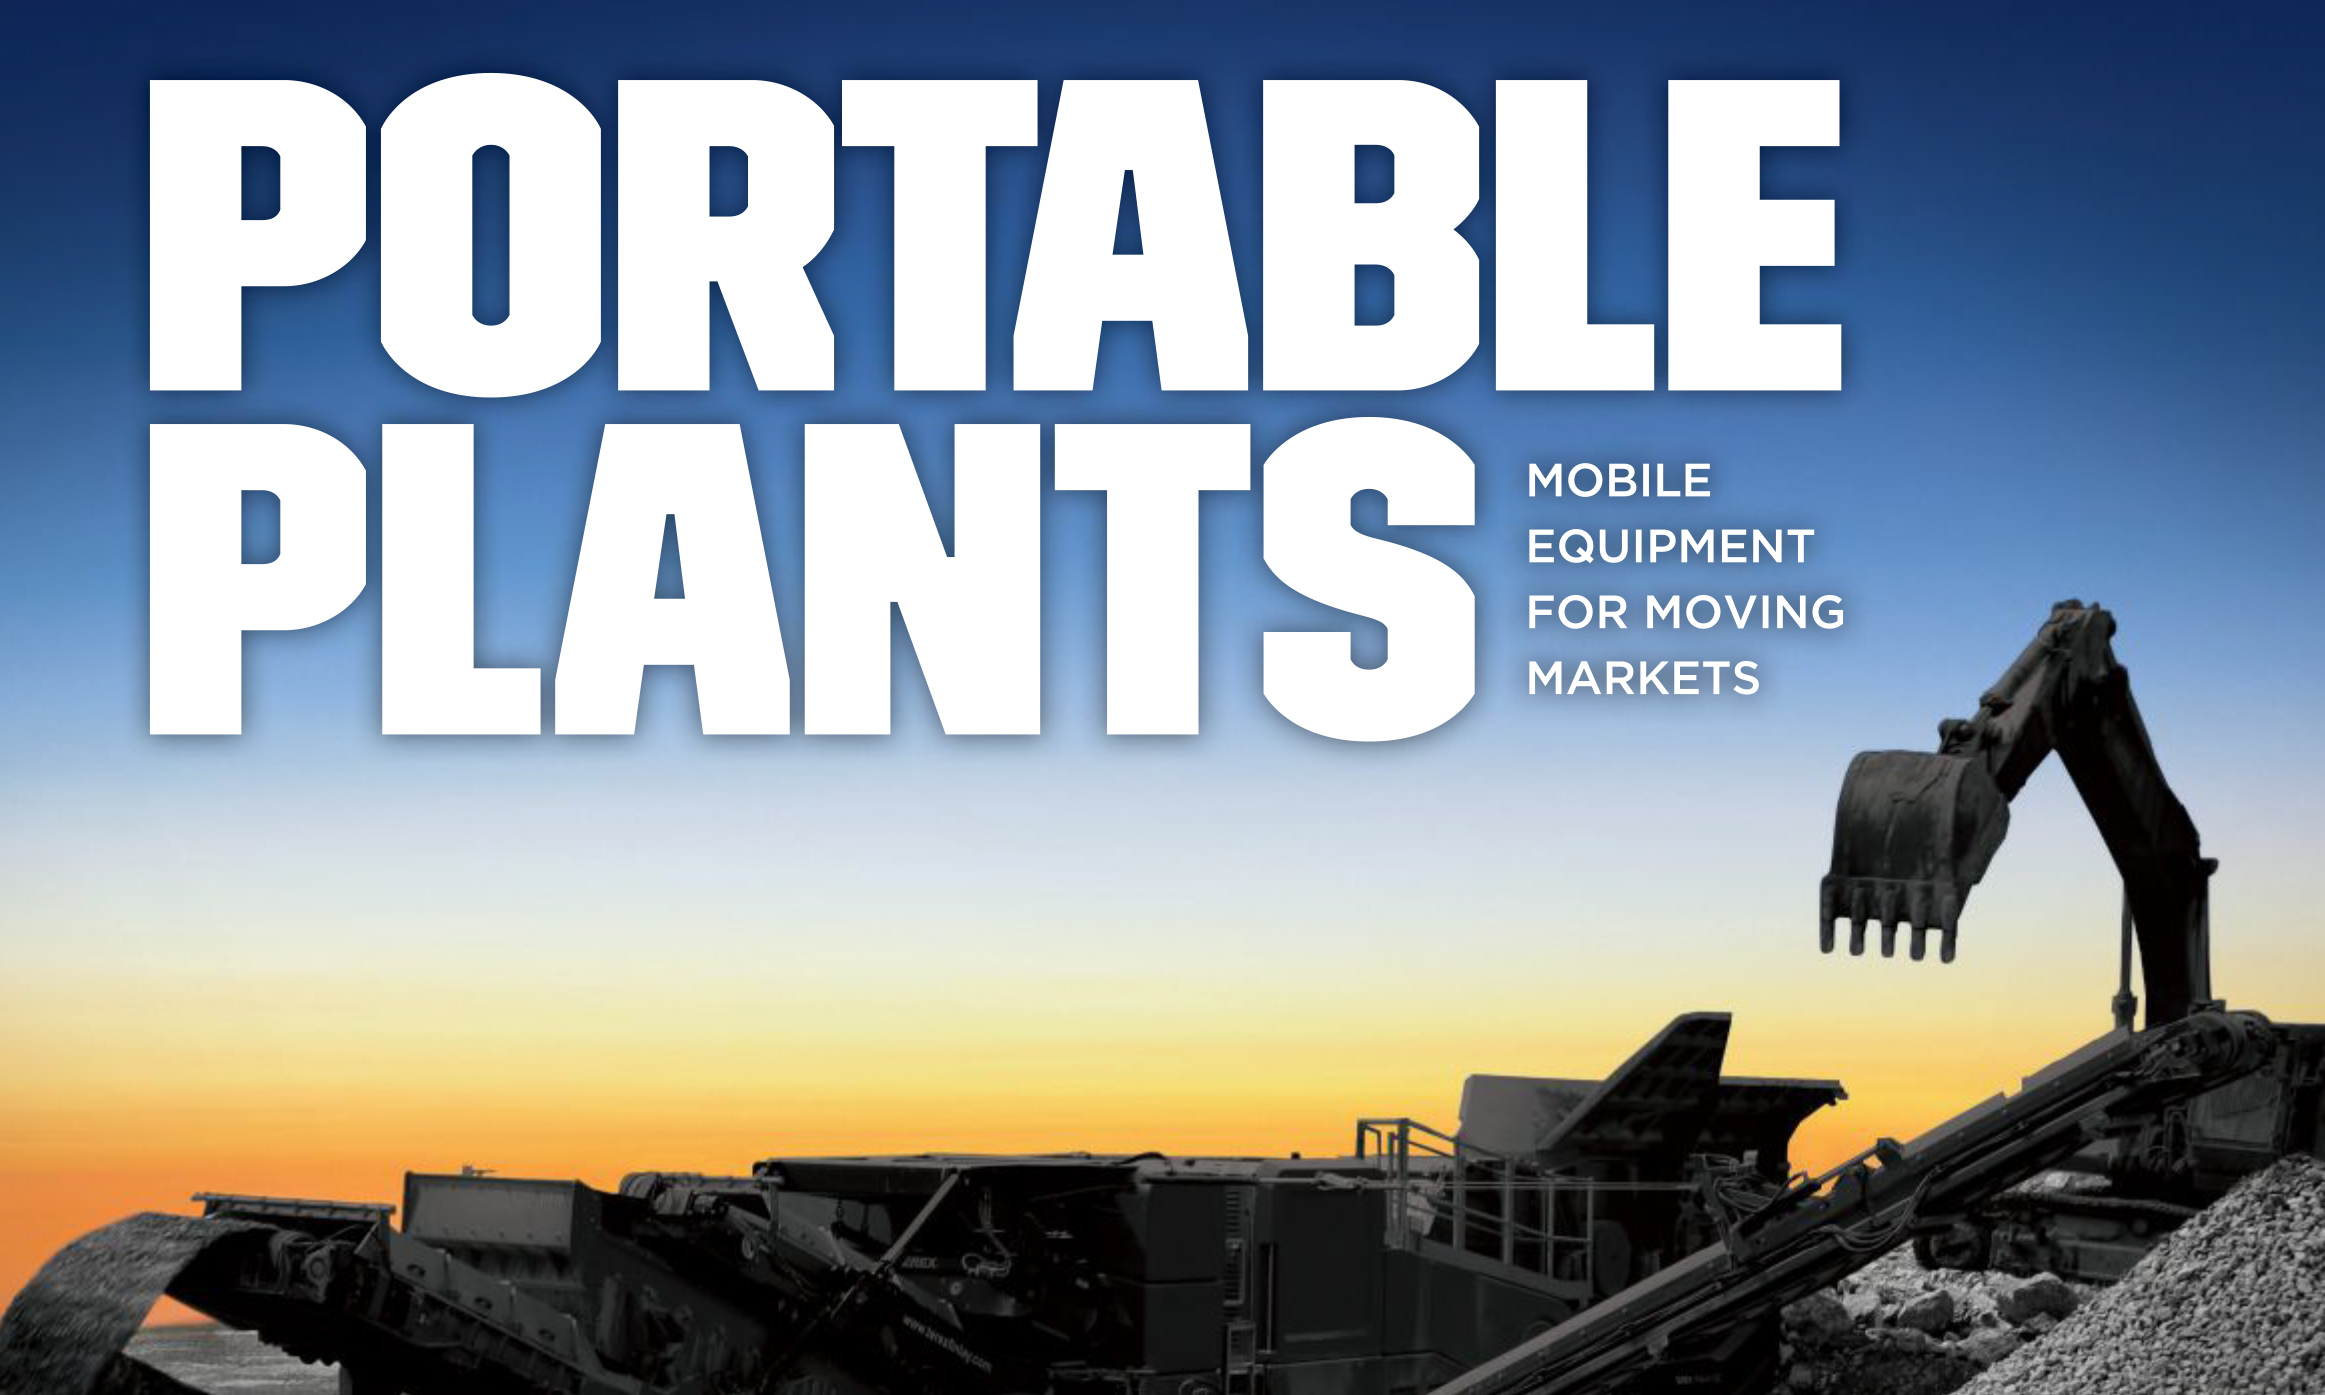 Portable Plants 2020 Buyers Guide